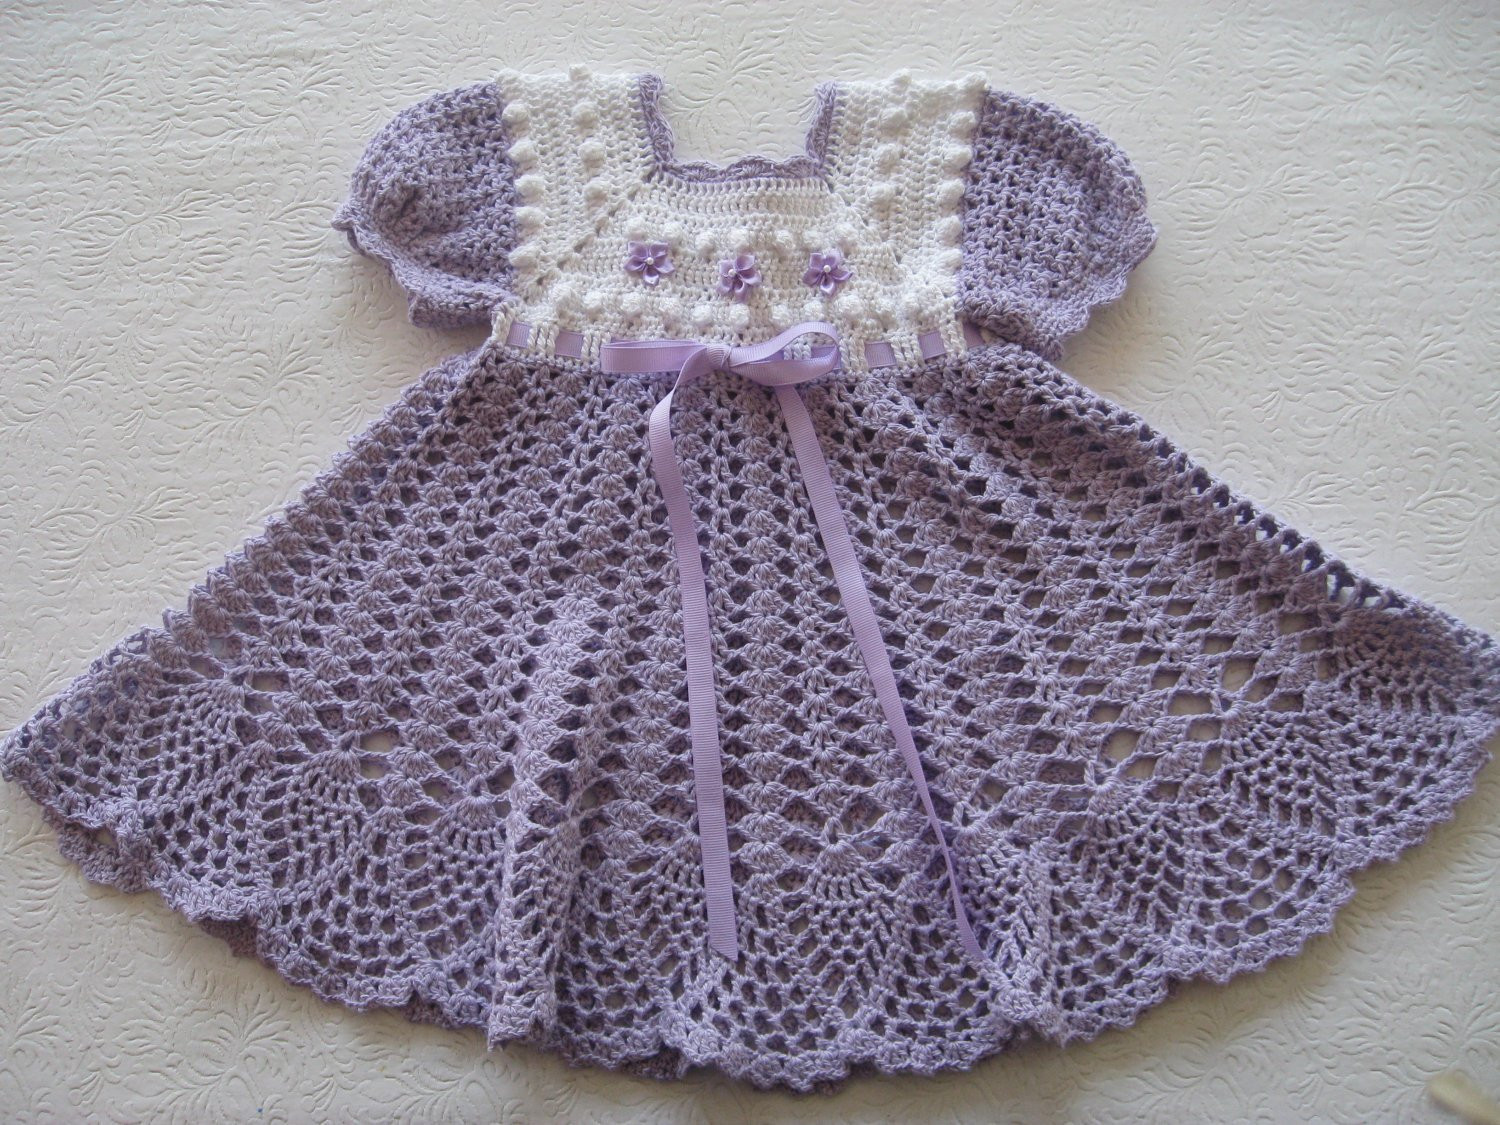 Crochet Baby Dress Patterns Awesome Crochet Pattern for Baby Girl Dress Pdf by thepatternparadise Of Awesome 42 Models Crochet Baby Dress Patterns